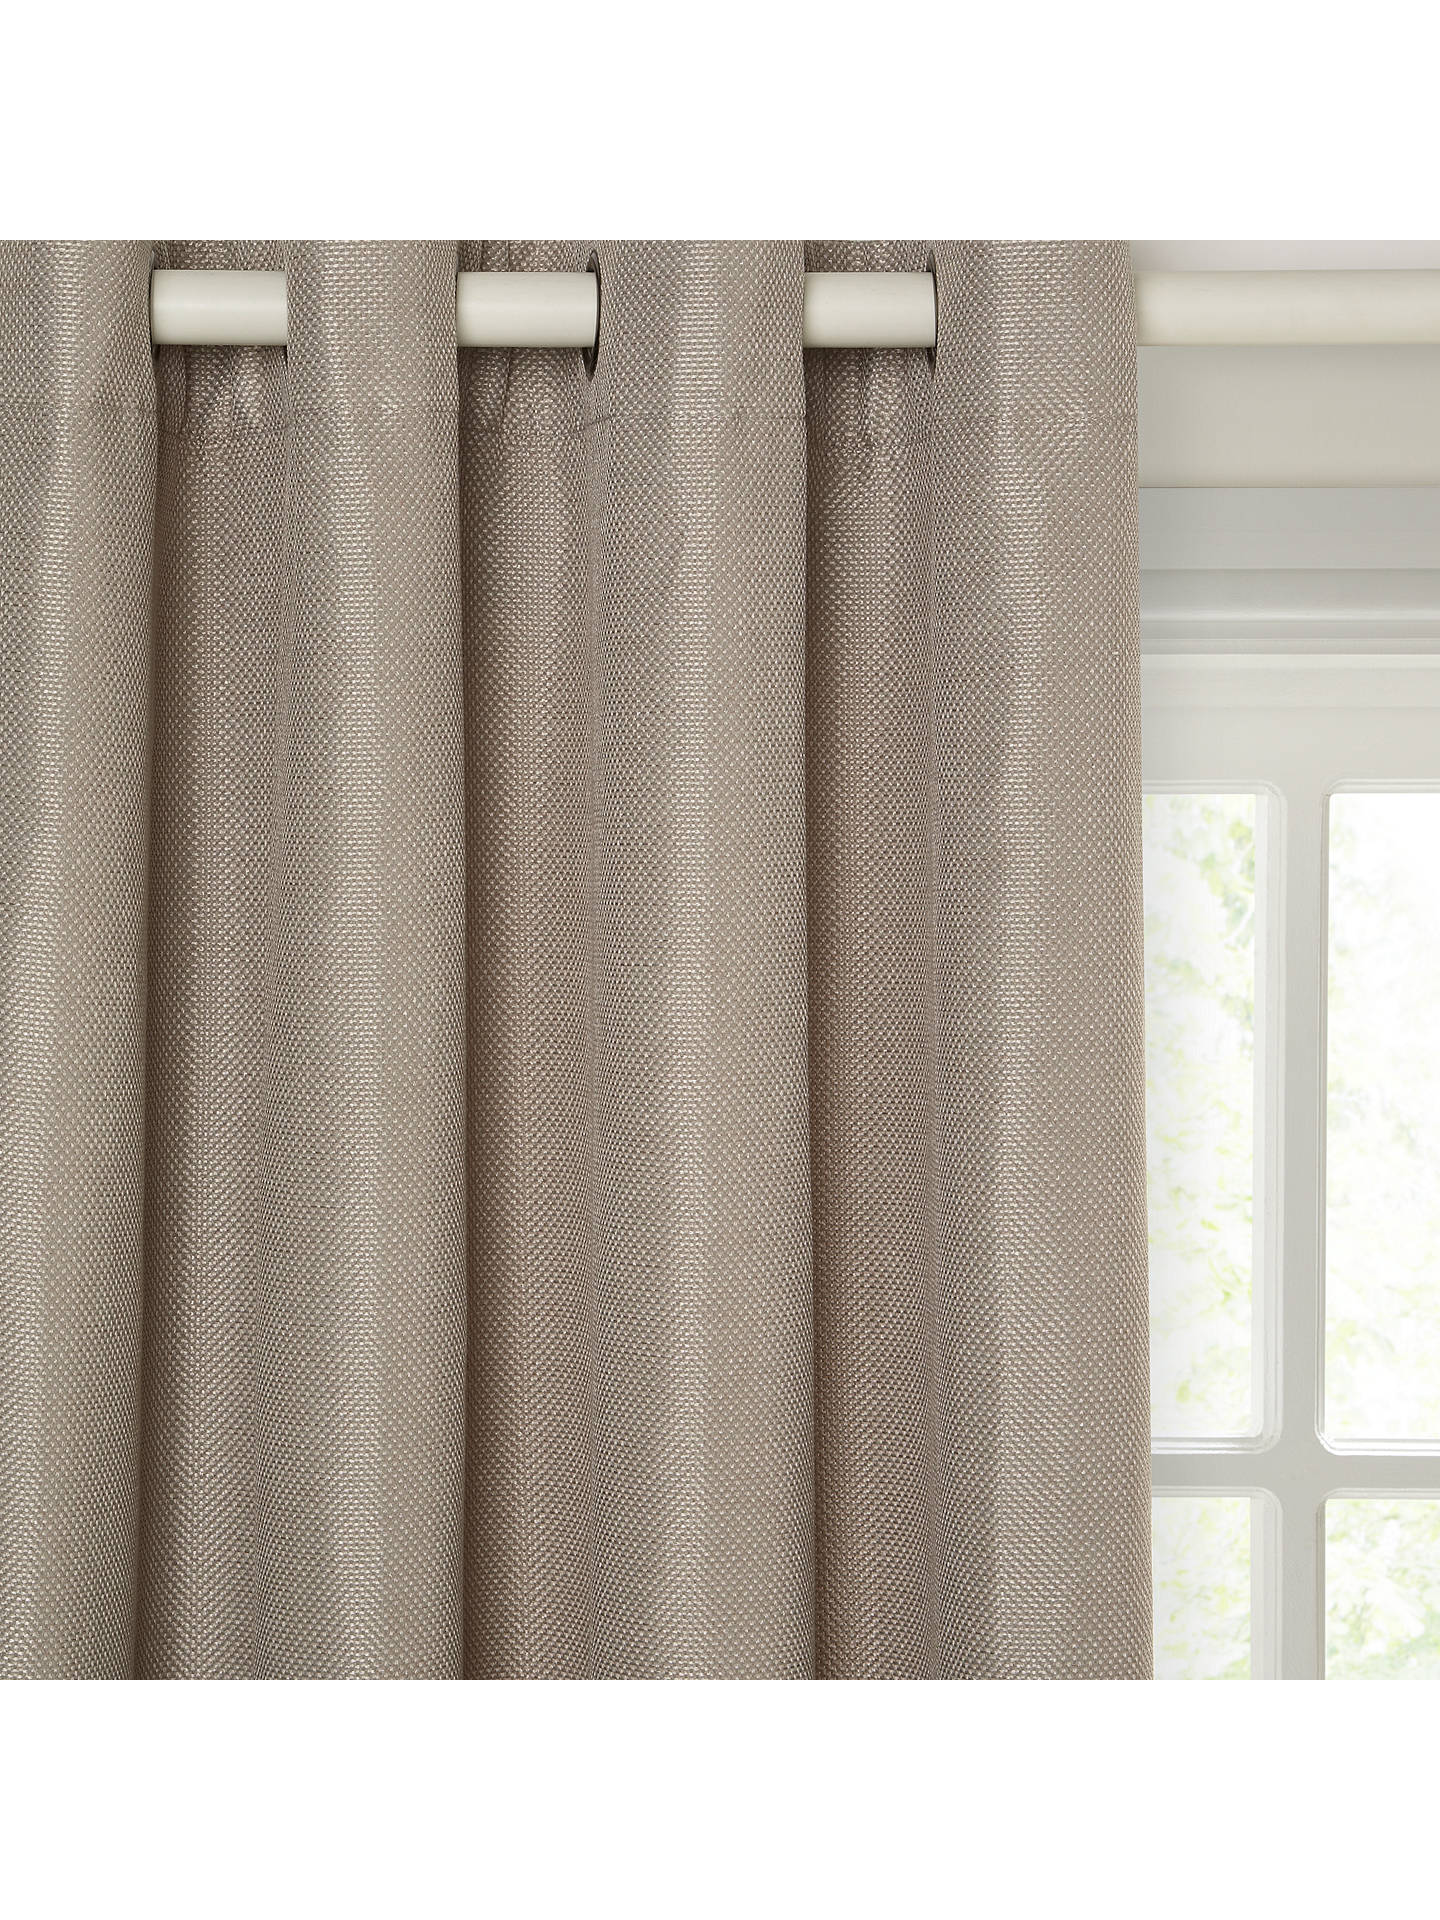 Buy John Lewis & Partners Pair Textured Weave Lined Eyelet Curtains, Mocha, W167 x Drop 182cm Online at johnlewis.com